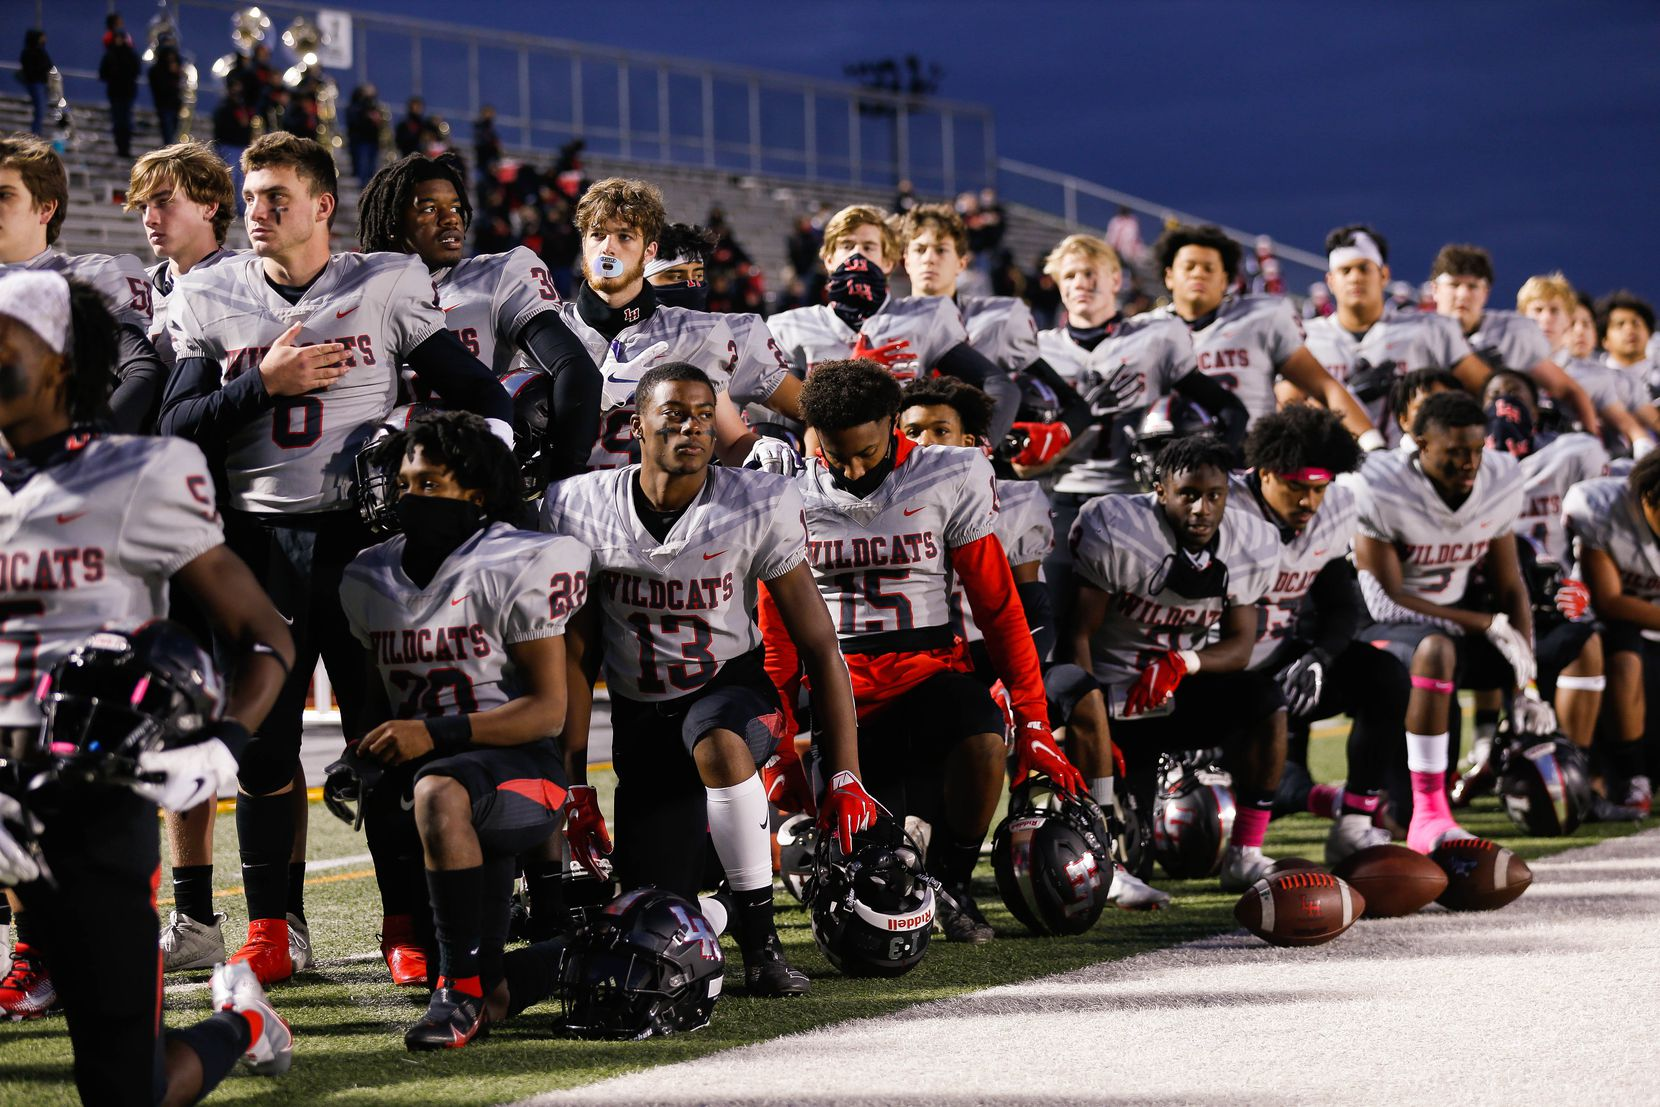 Lake Highlands players kneel and stand during the national anthem before a football game against Irving MacArthur High School at Joy & Ralph Ellis Stadium in Irving on Friday, Oct. 23, 2020. (Juan Figueroa/ The Dallas Morning News)